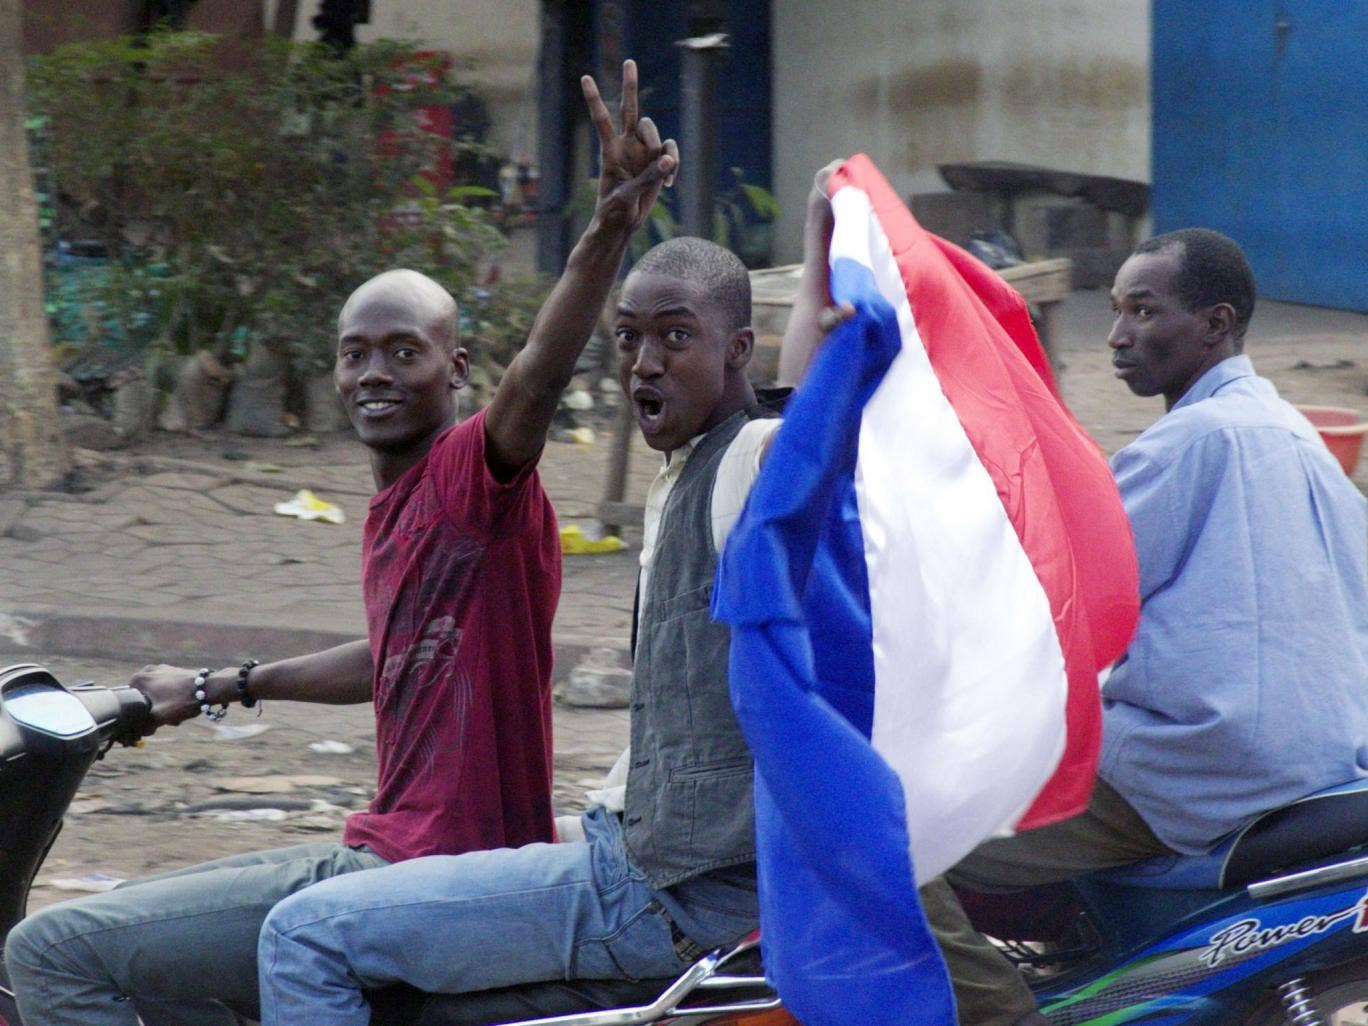 Inhabitants of Bamako, the capital of Mali, wave a French flag following the military intervention